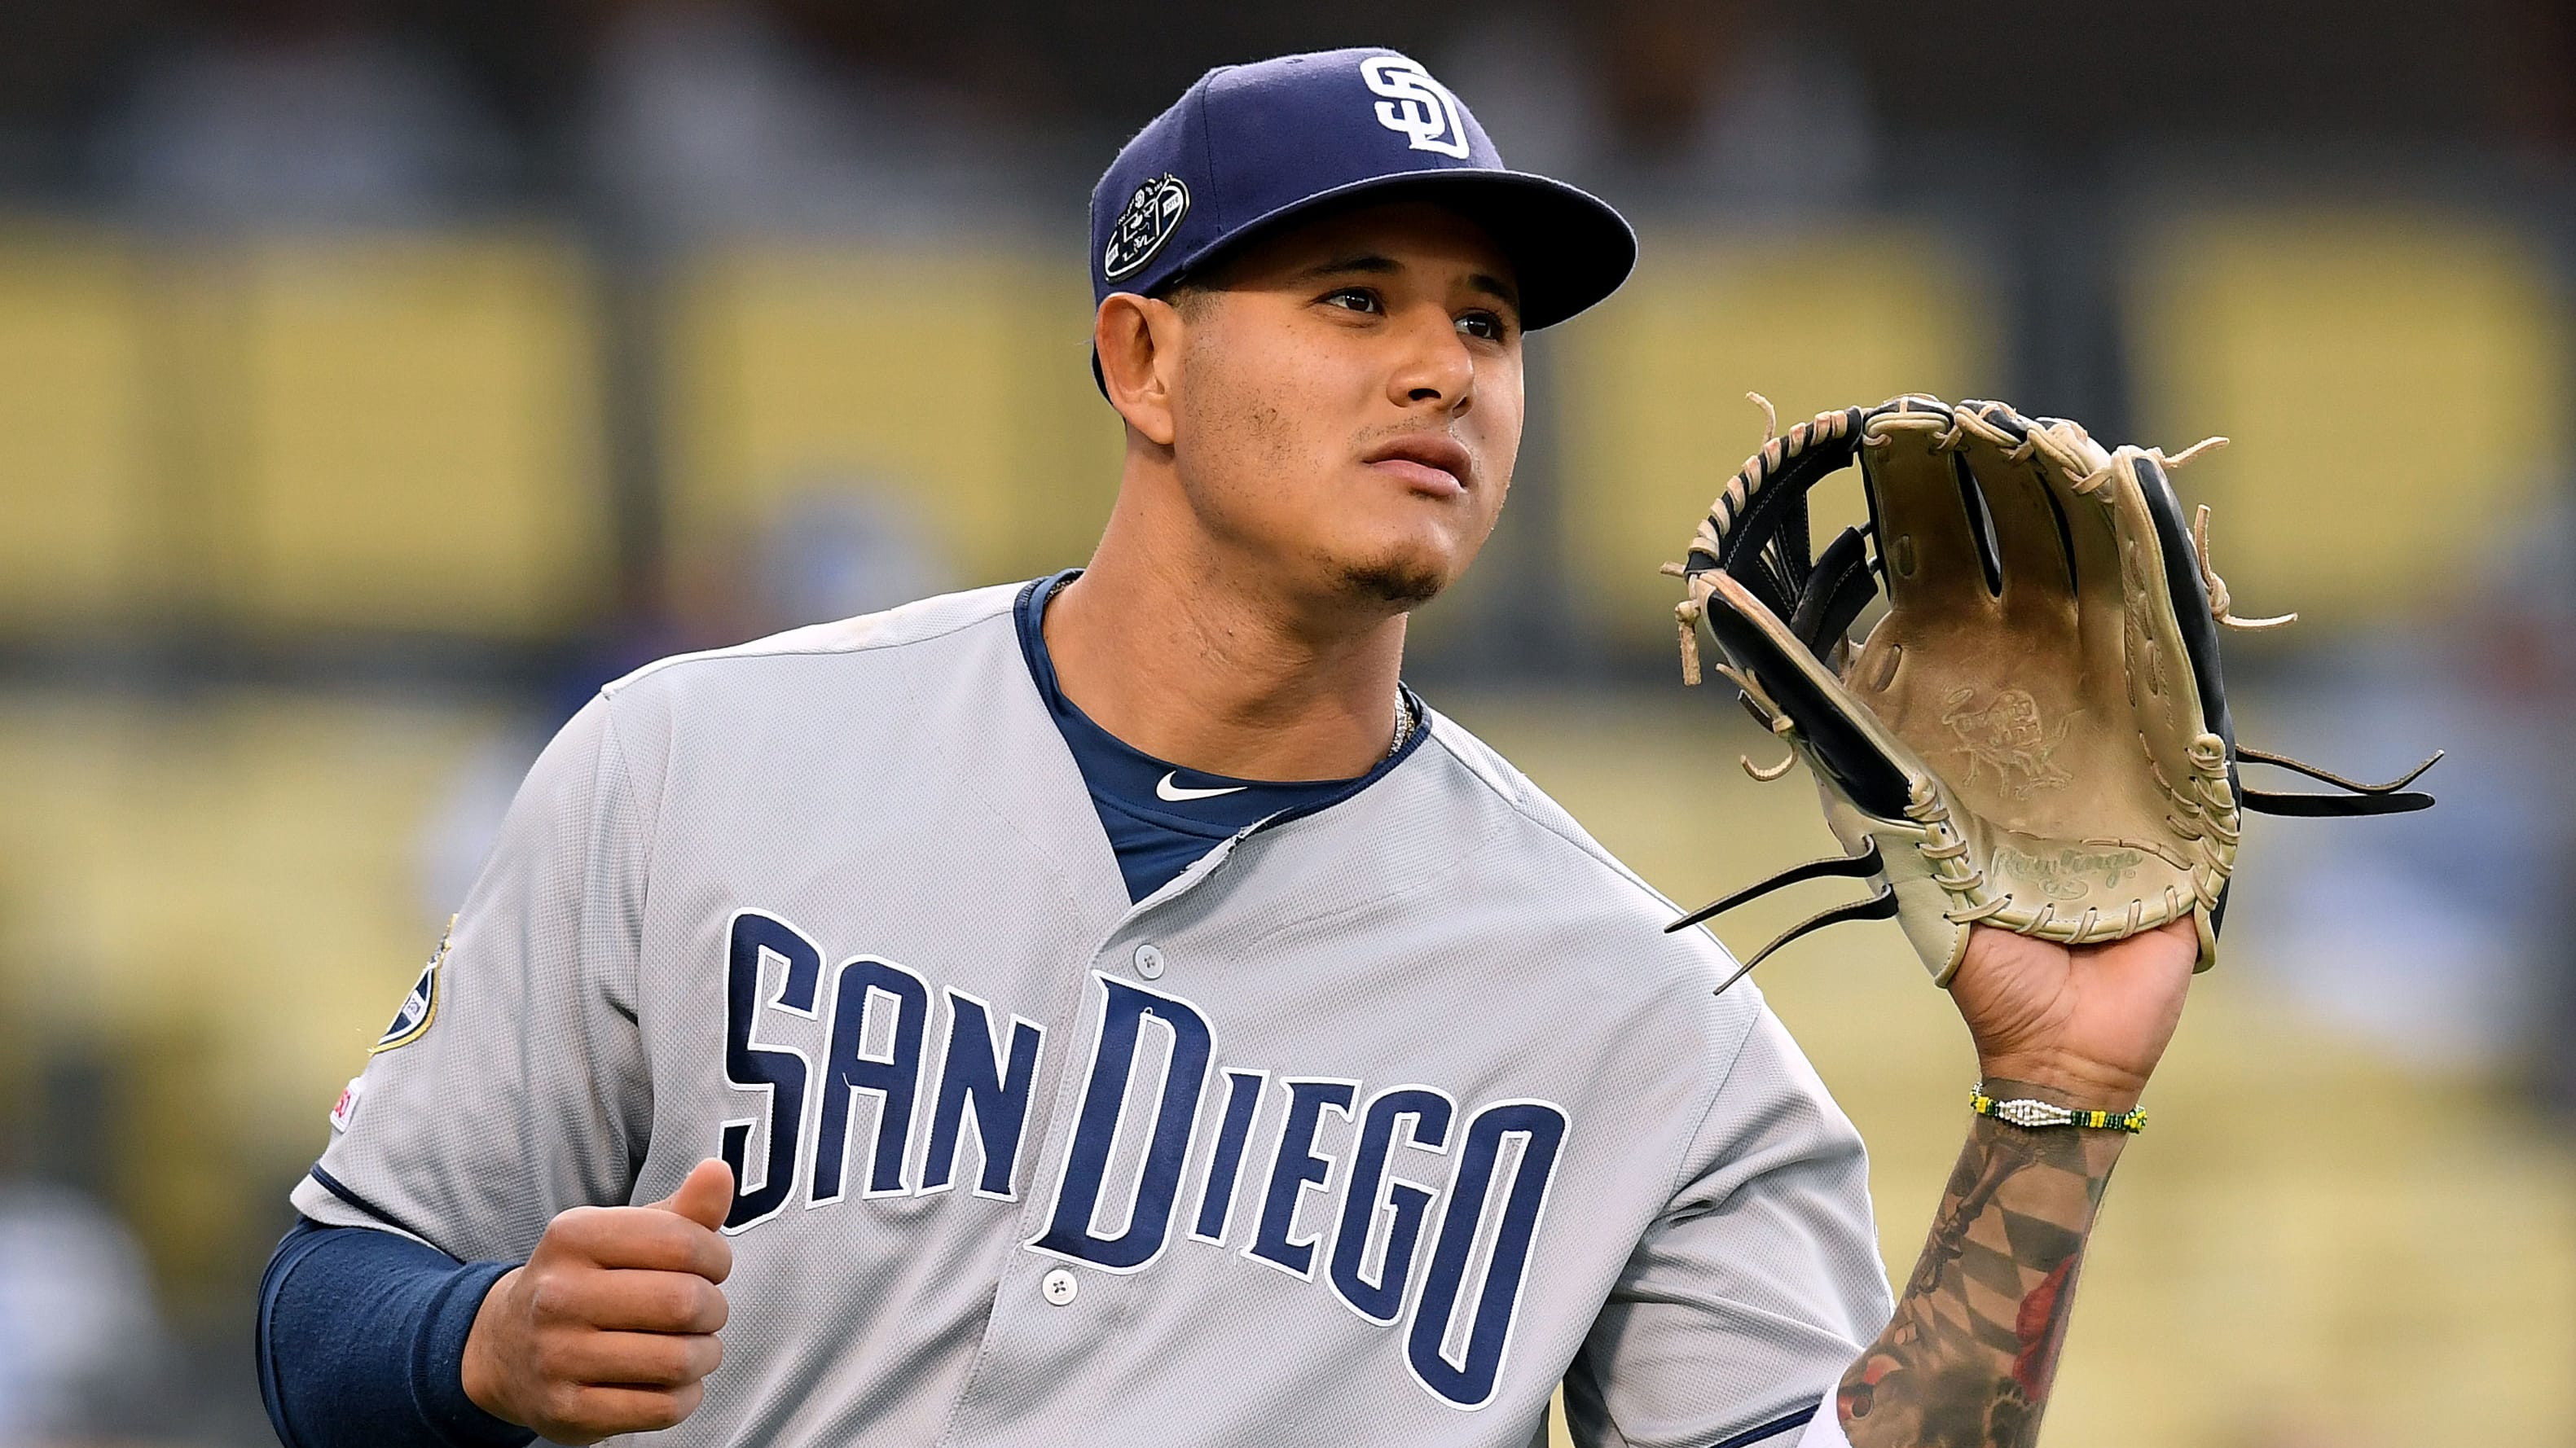 LOS ANGELES, CALIFORNIA - MAY 14:  Manny Machado #13 of the San Diego Padres warms up before the game against the Los Angeles Dodgers at Dodger Stadium on May 14, 2019 in Los Angeles, California. (Photo by Harry How/Getty Images)